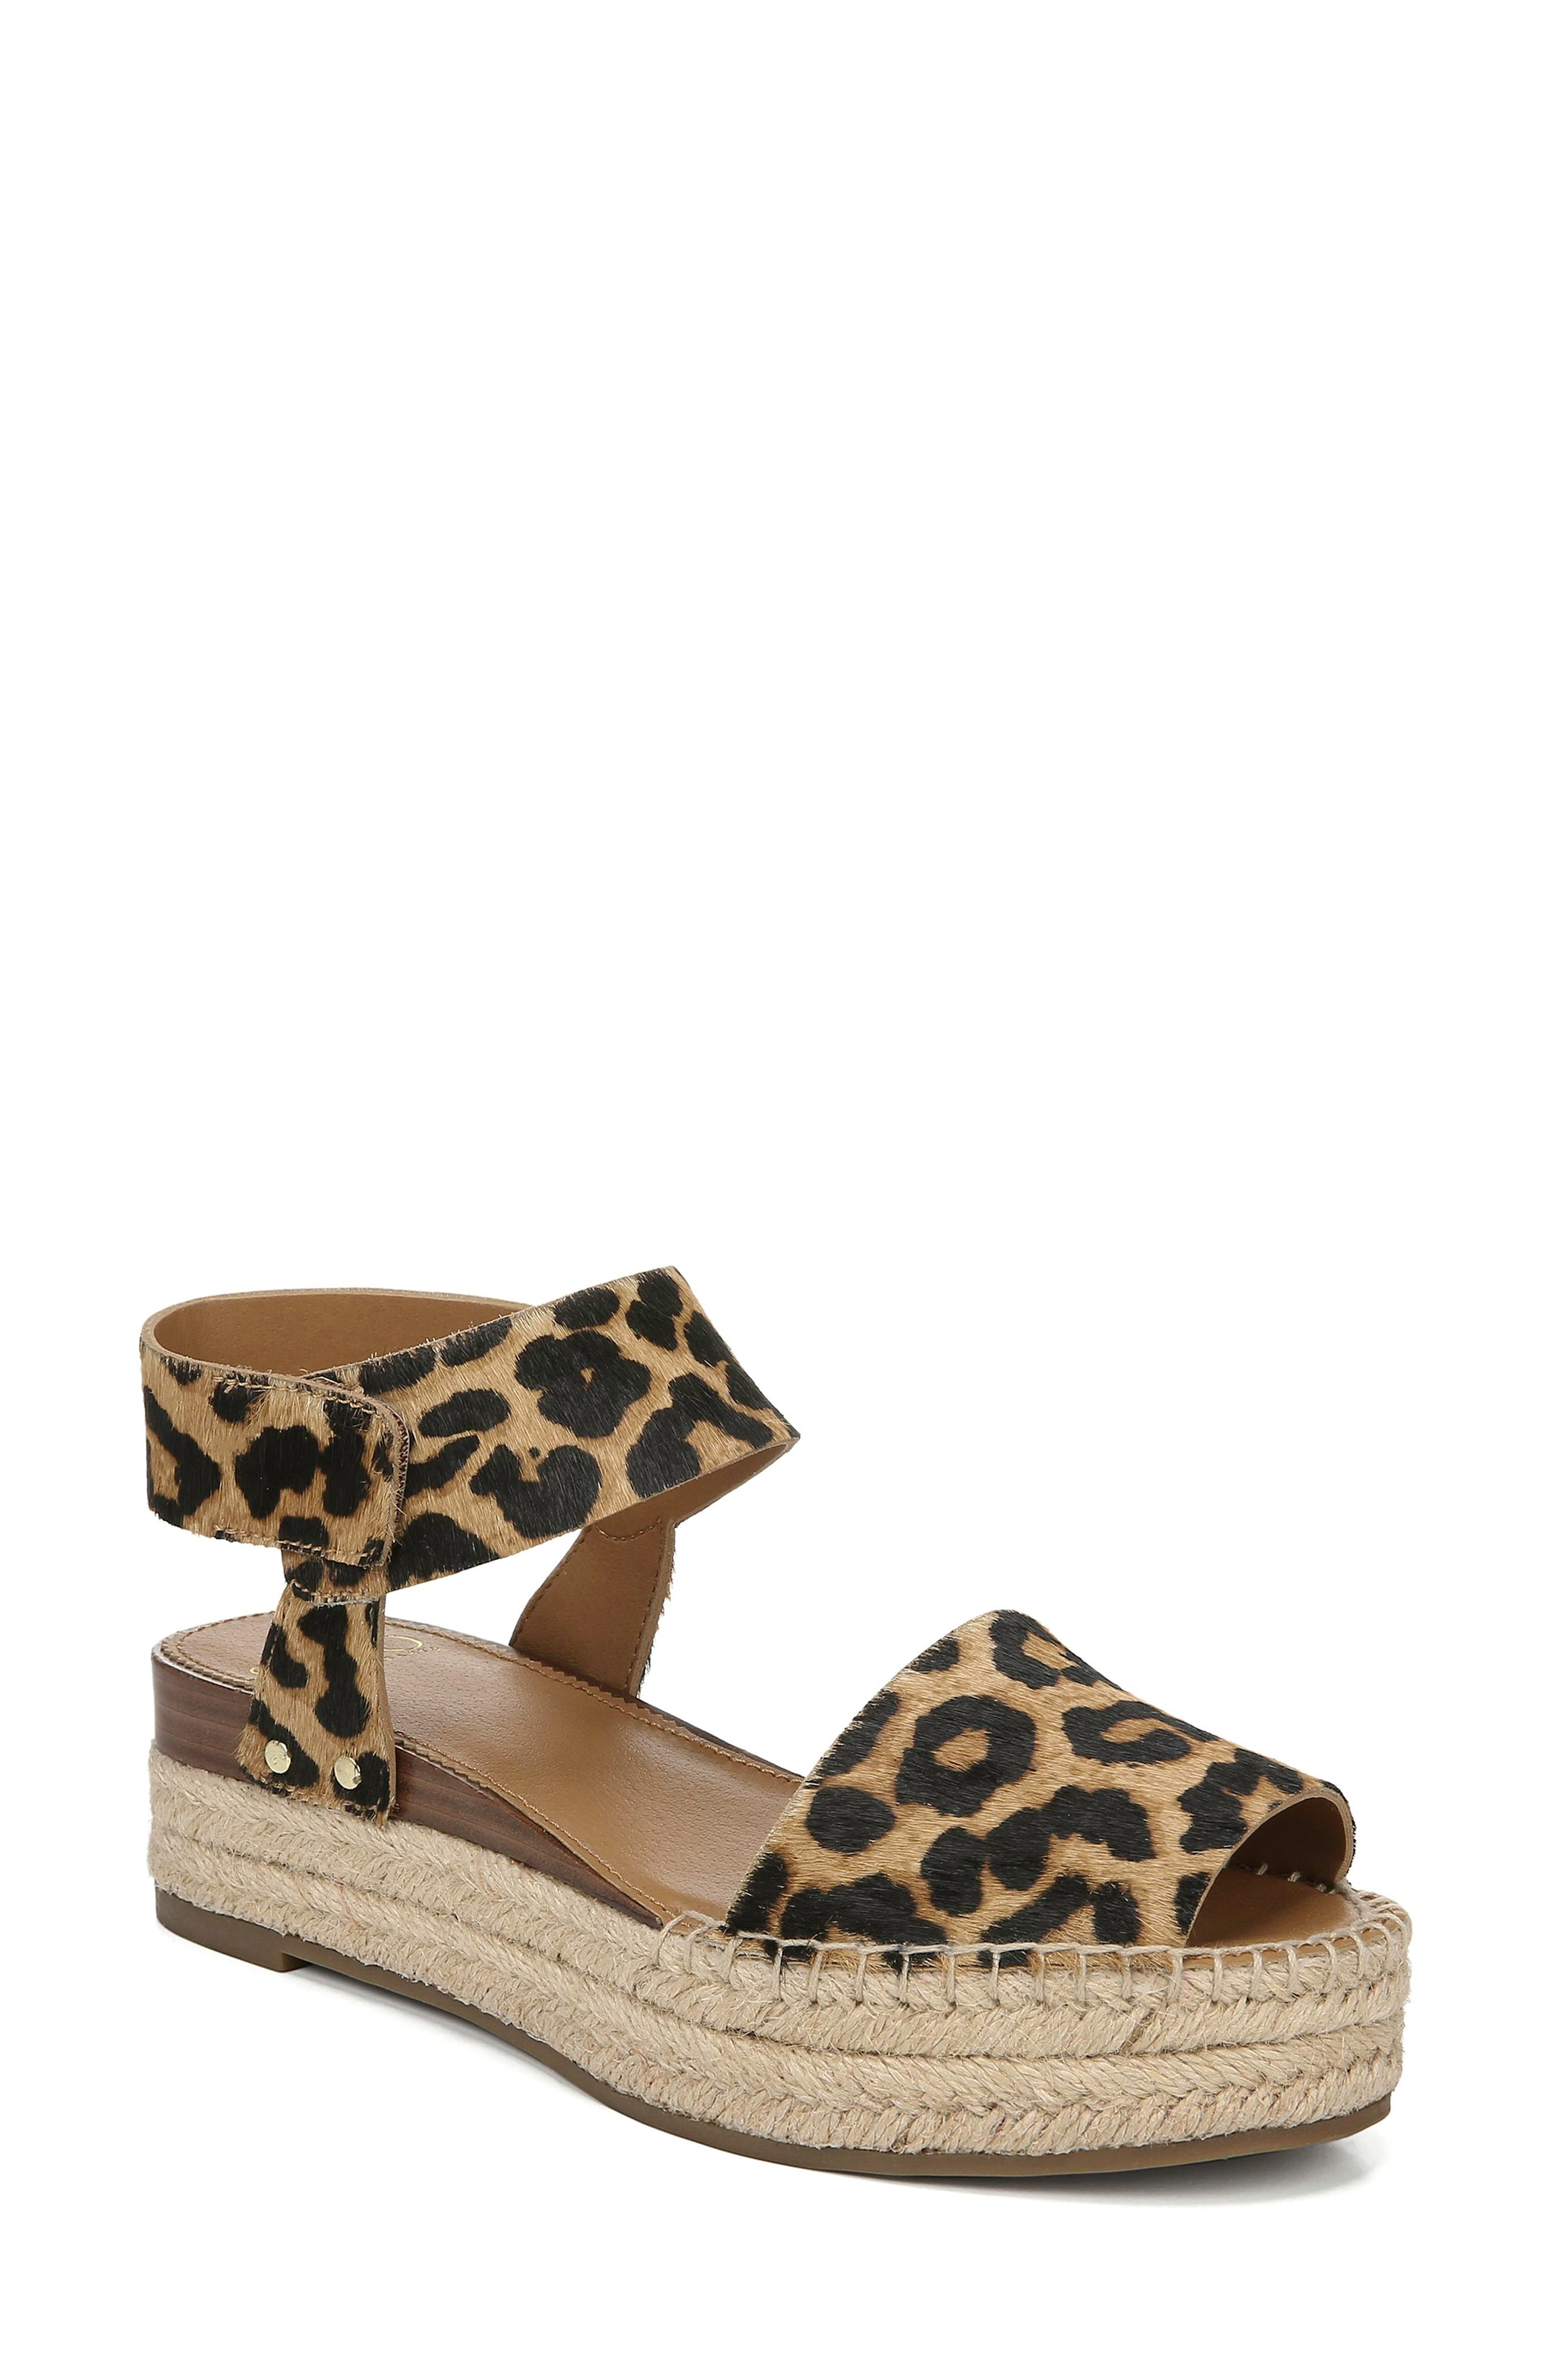 Oak Genuine Calf Hair Platform Wedge Espadrille, Main, color, LEOPARD PRINT CALF HAIR